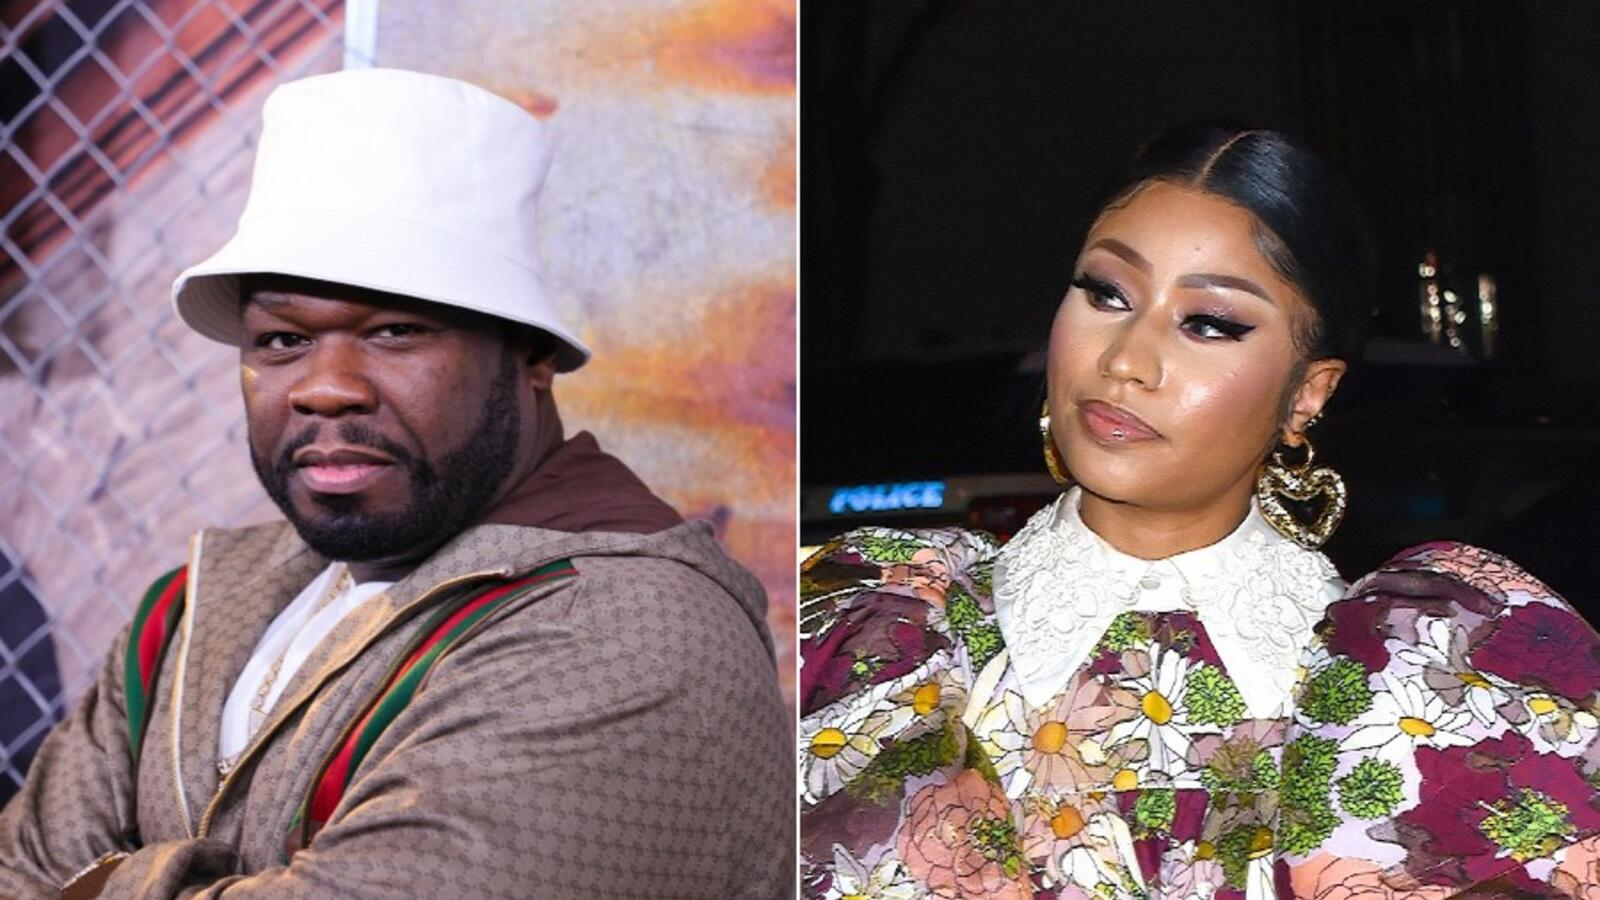 50 Cent Shares Theory On Nicki Minaj's Cousin's Friend's Swollen Testicles